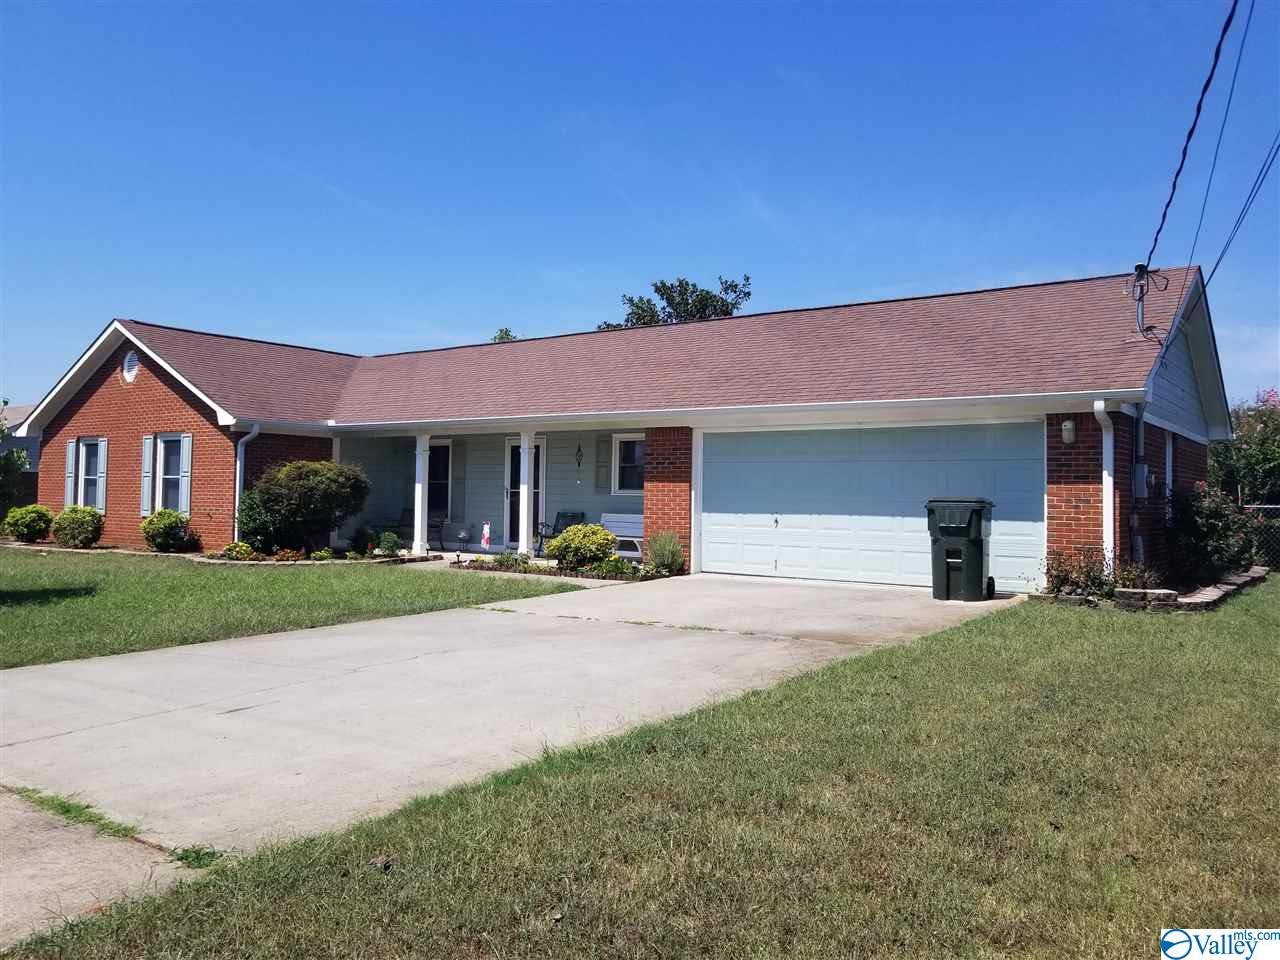 Auction will be held on-site Oct. 17th at 6pm. Home, Car & Personal Items. Nice brick rancher in Monrovia School District. Home features 3 bedrooms, 2 full bathrooms, approx. 1300 sq ft, vaulted ceilings, covered porch, fenced yard, nice outbuilding and 2 car attached garage. Personal items includes like new 2013 GMC Terrain with approx. 35,000 miles +/-, several sets of Temptations dinnerware & serving dishes, plus size women clothes, furniture, lamps, and tons of boxes of misc. items.